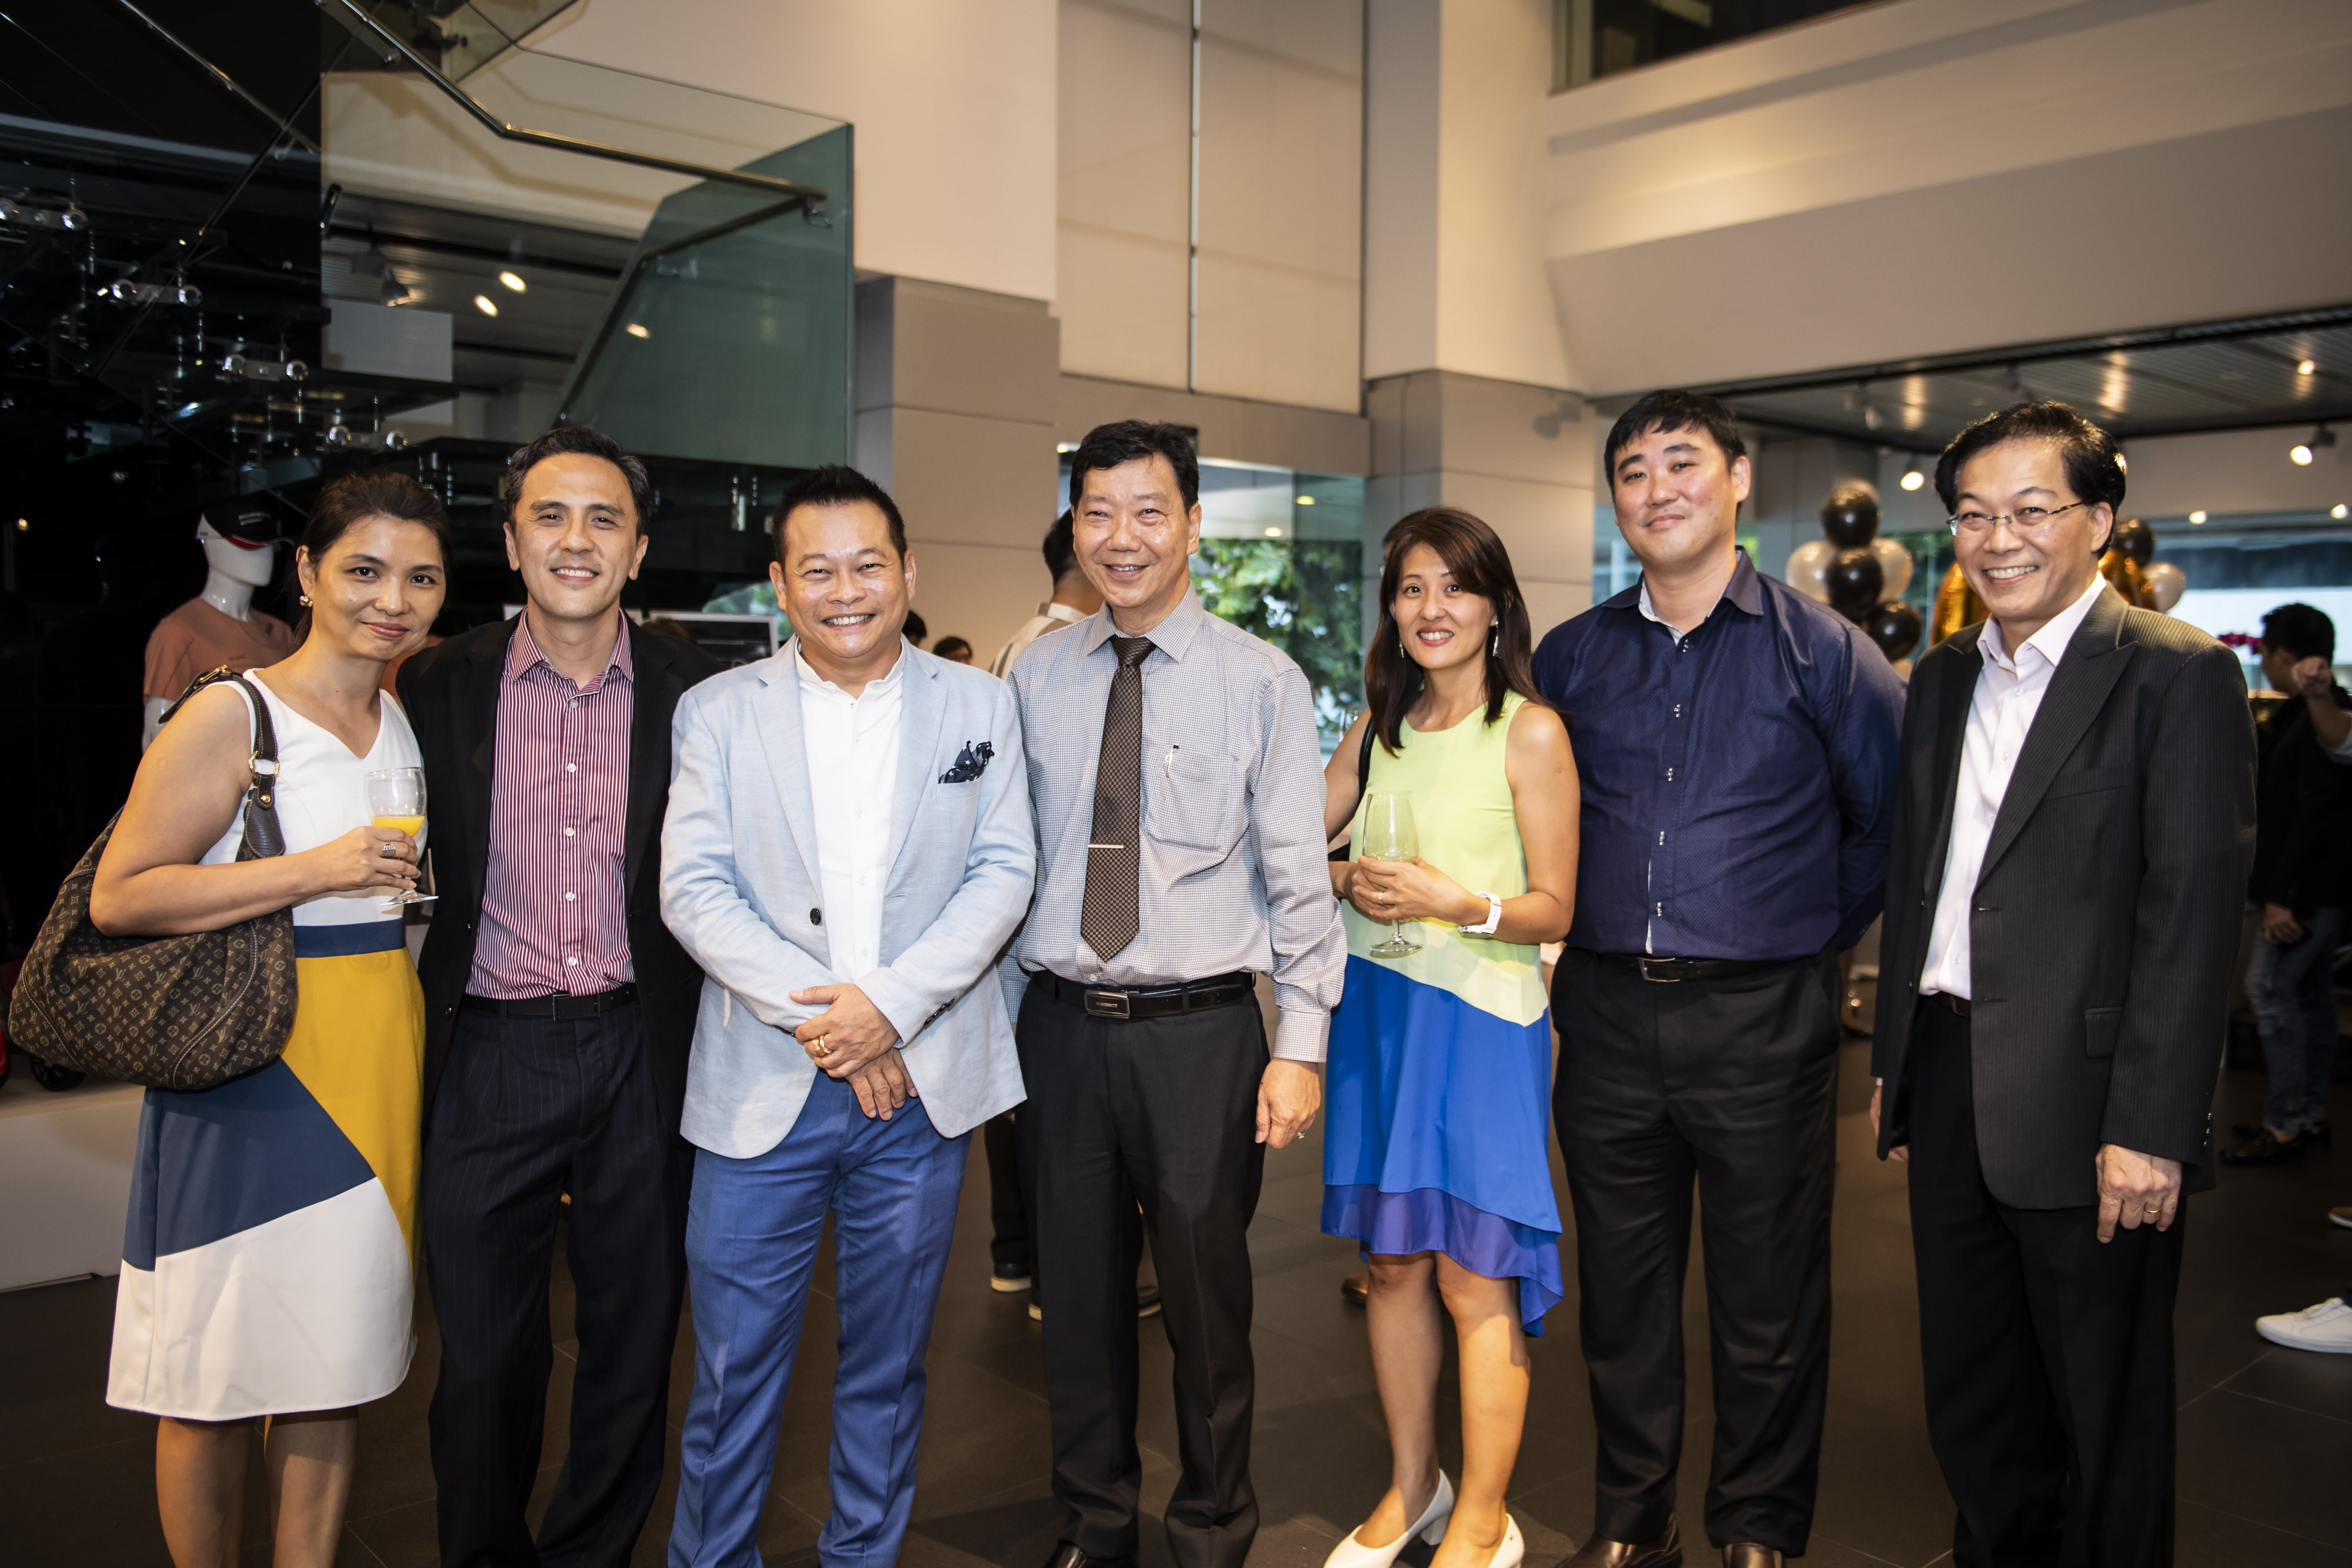 Mr Francis Lee, Managing Director of Stuttgart Auto (centre) and Mr Joe Goh (third from left), together with Porsche guests at the celebratory delivery party held at Porsche Centre Singapore